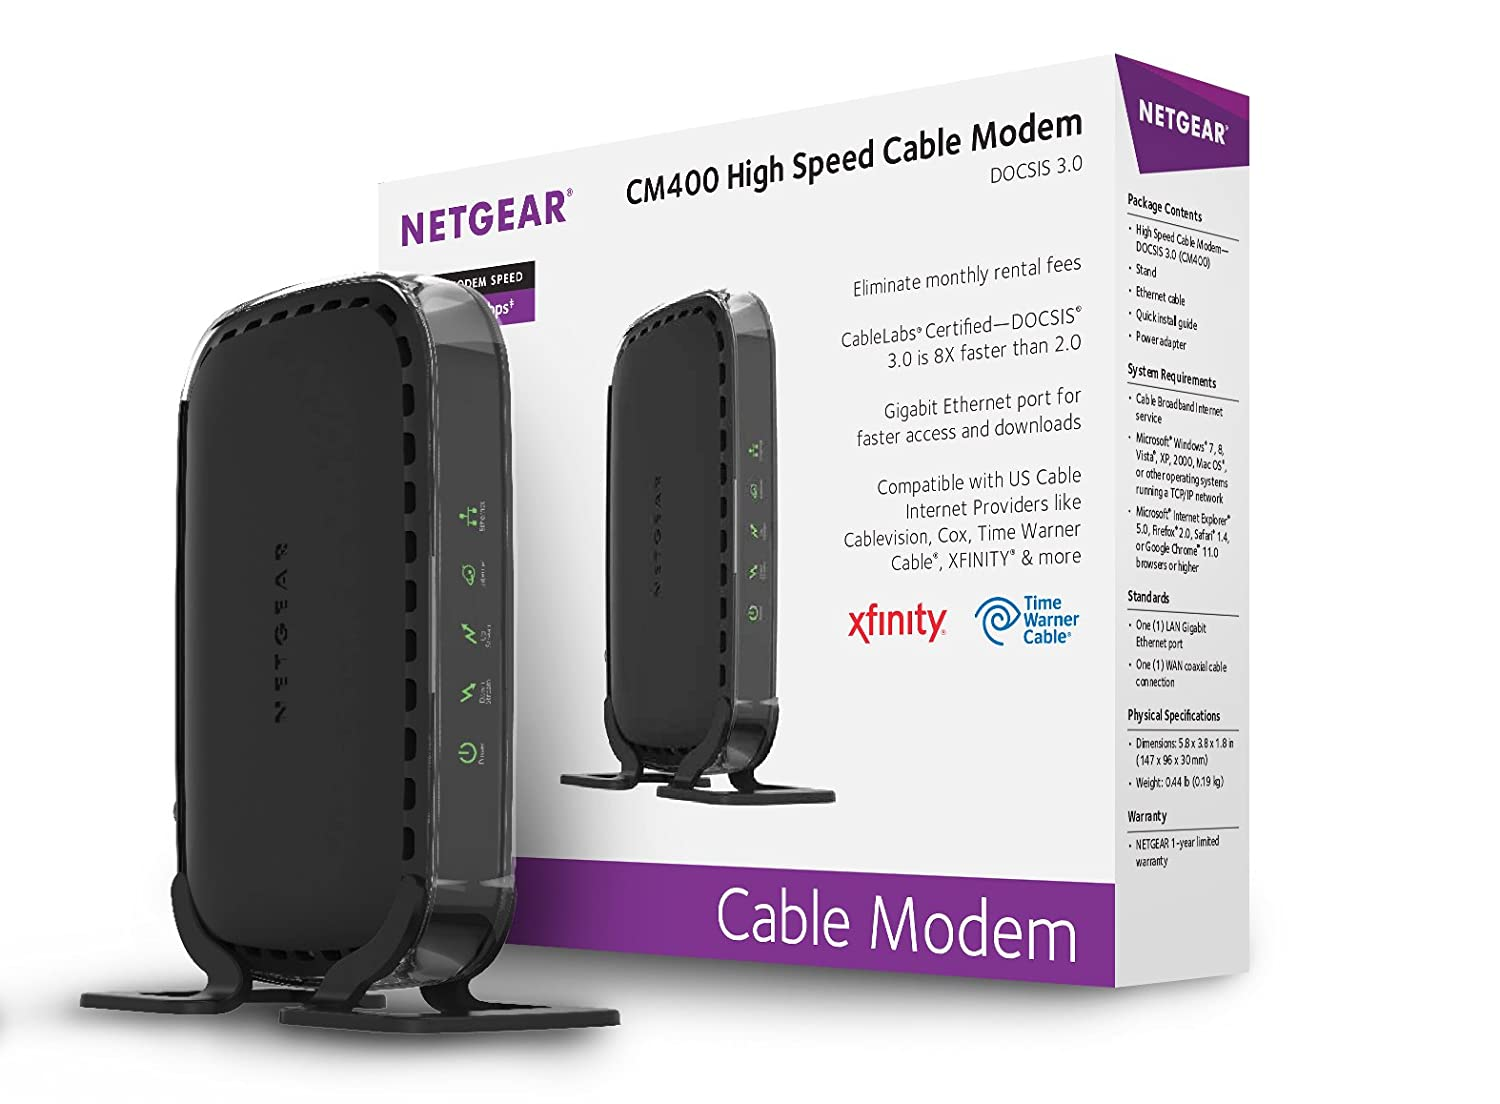 Top 10 Best Cable Modems Reviews in 2020 3